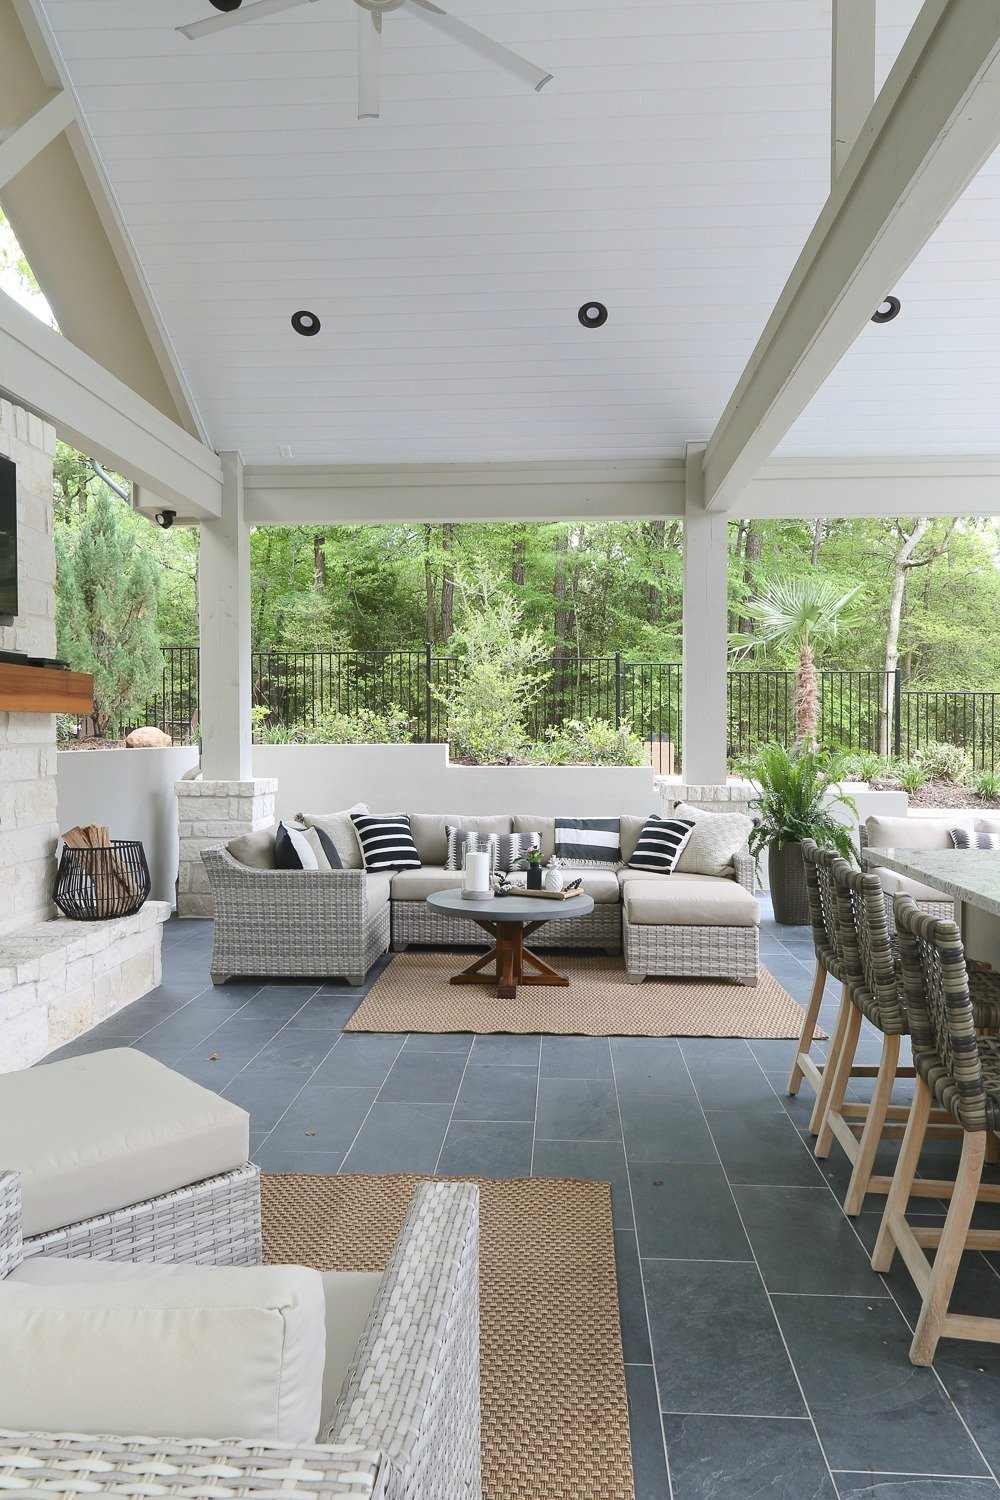 Outdoor patio furniture and decor. Pool house reveal